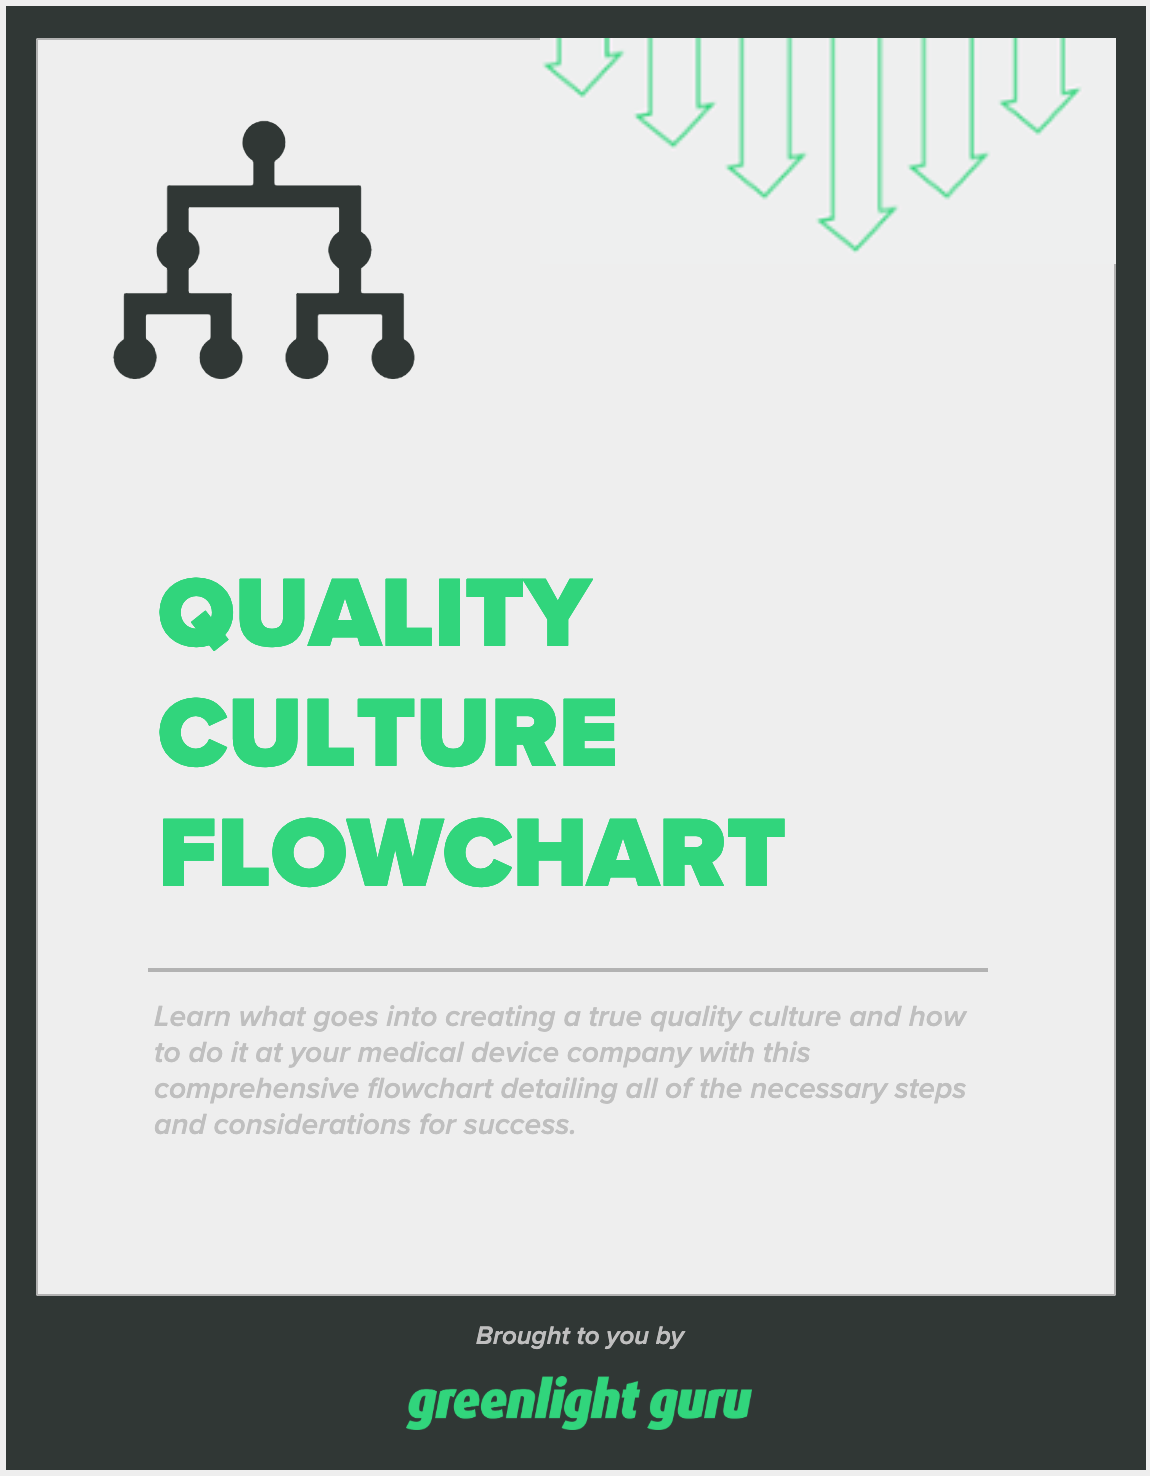 improving quality culture flowchart